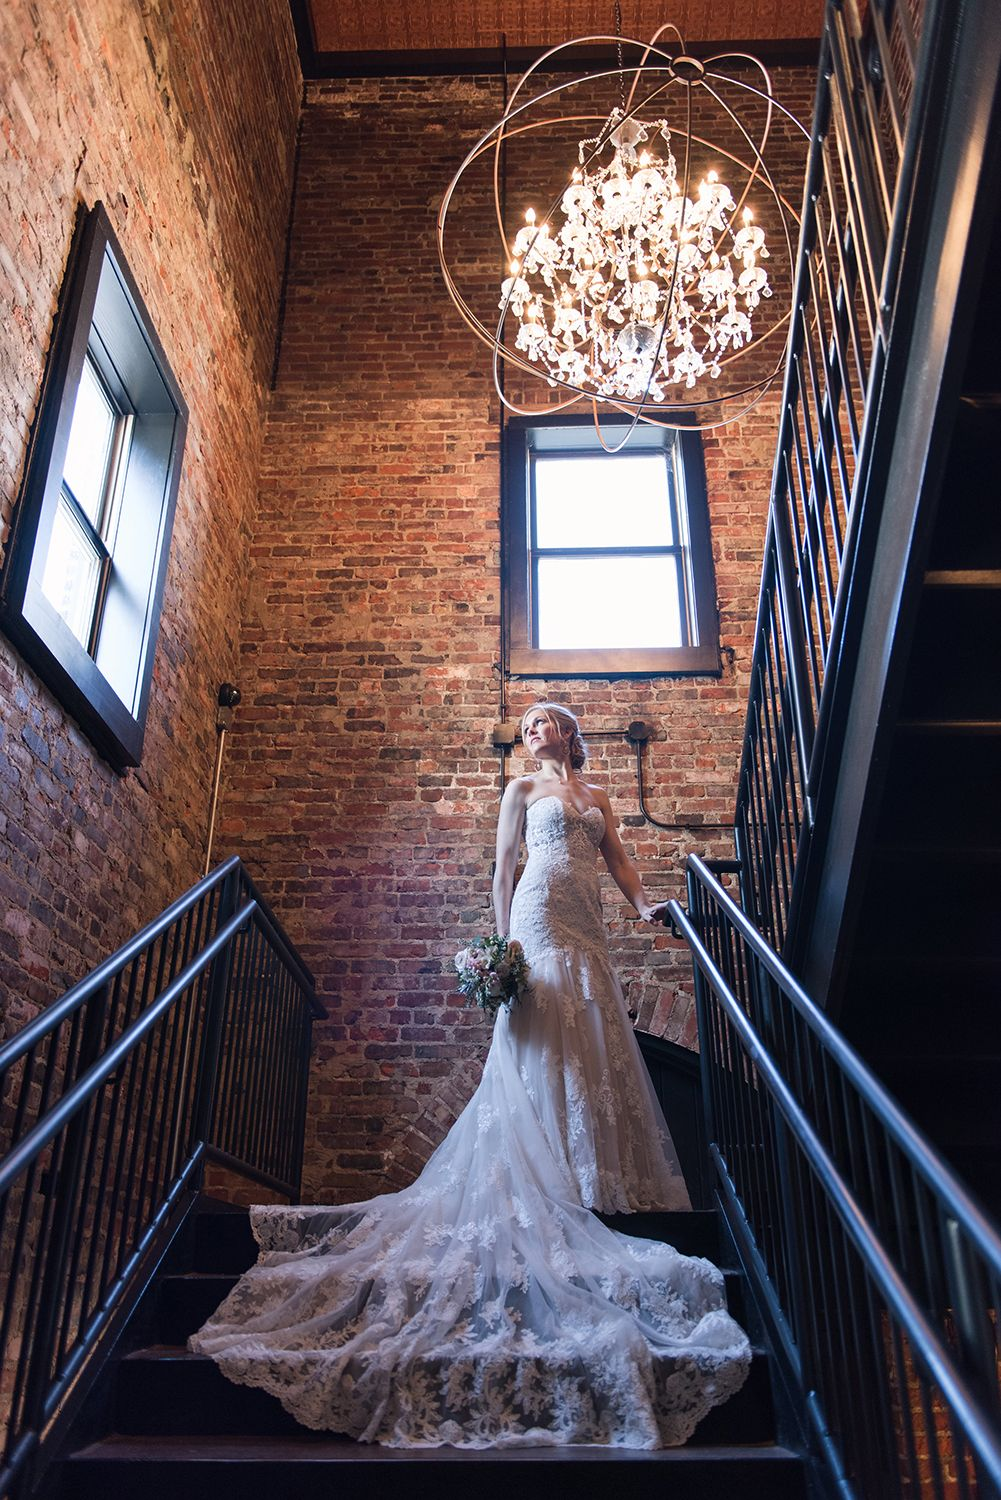 Industrial Rustic Wedding Reception Venue Indianapolis Indiana Photo Stewa Wedding Venues Indiana Cheap Wedding Reception Venues Industrial Wedding Venues